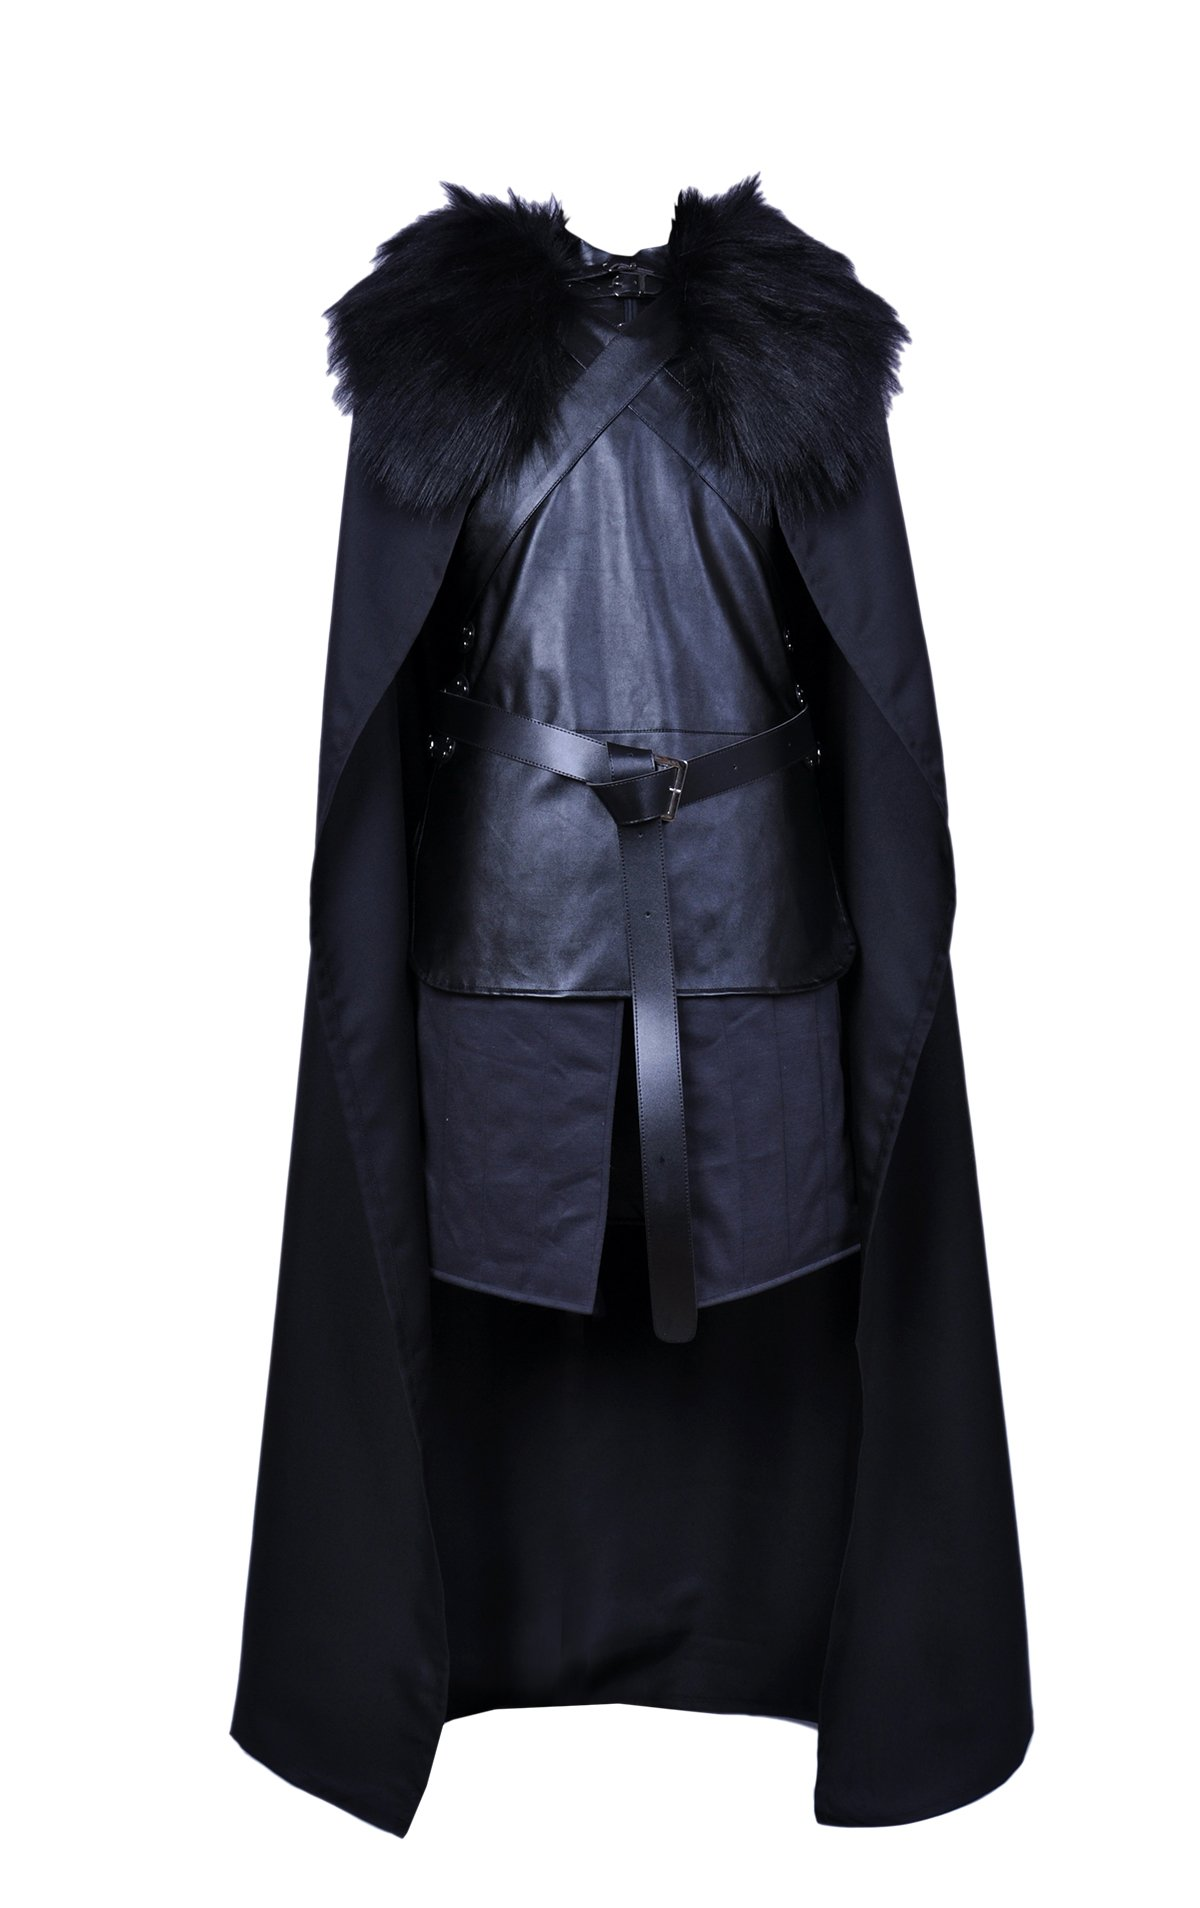 CosTop Game of Thrones Jon Snow Knights Watch Cosplay Costume for Man and Child,Black, Male -XL